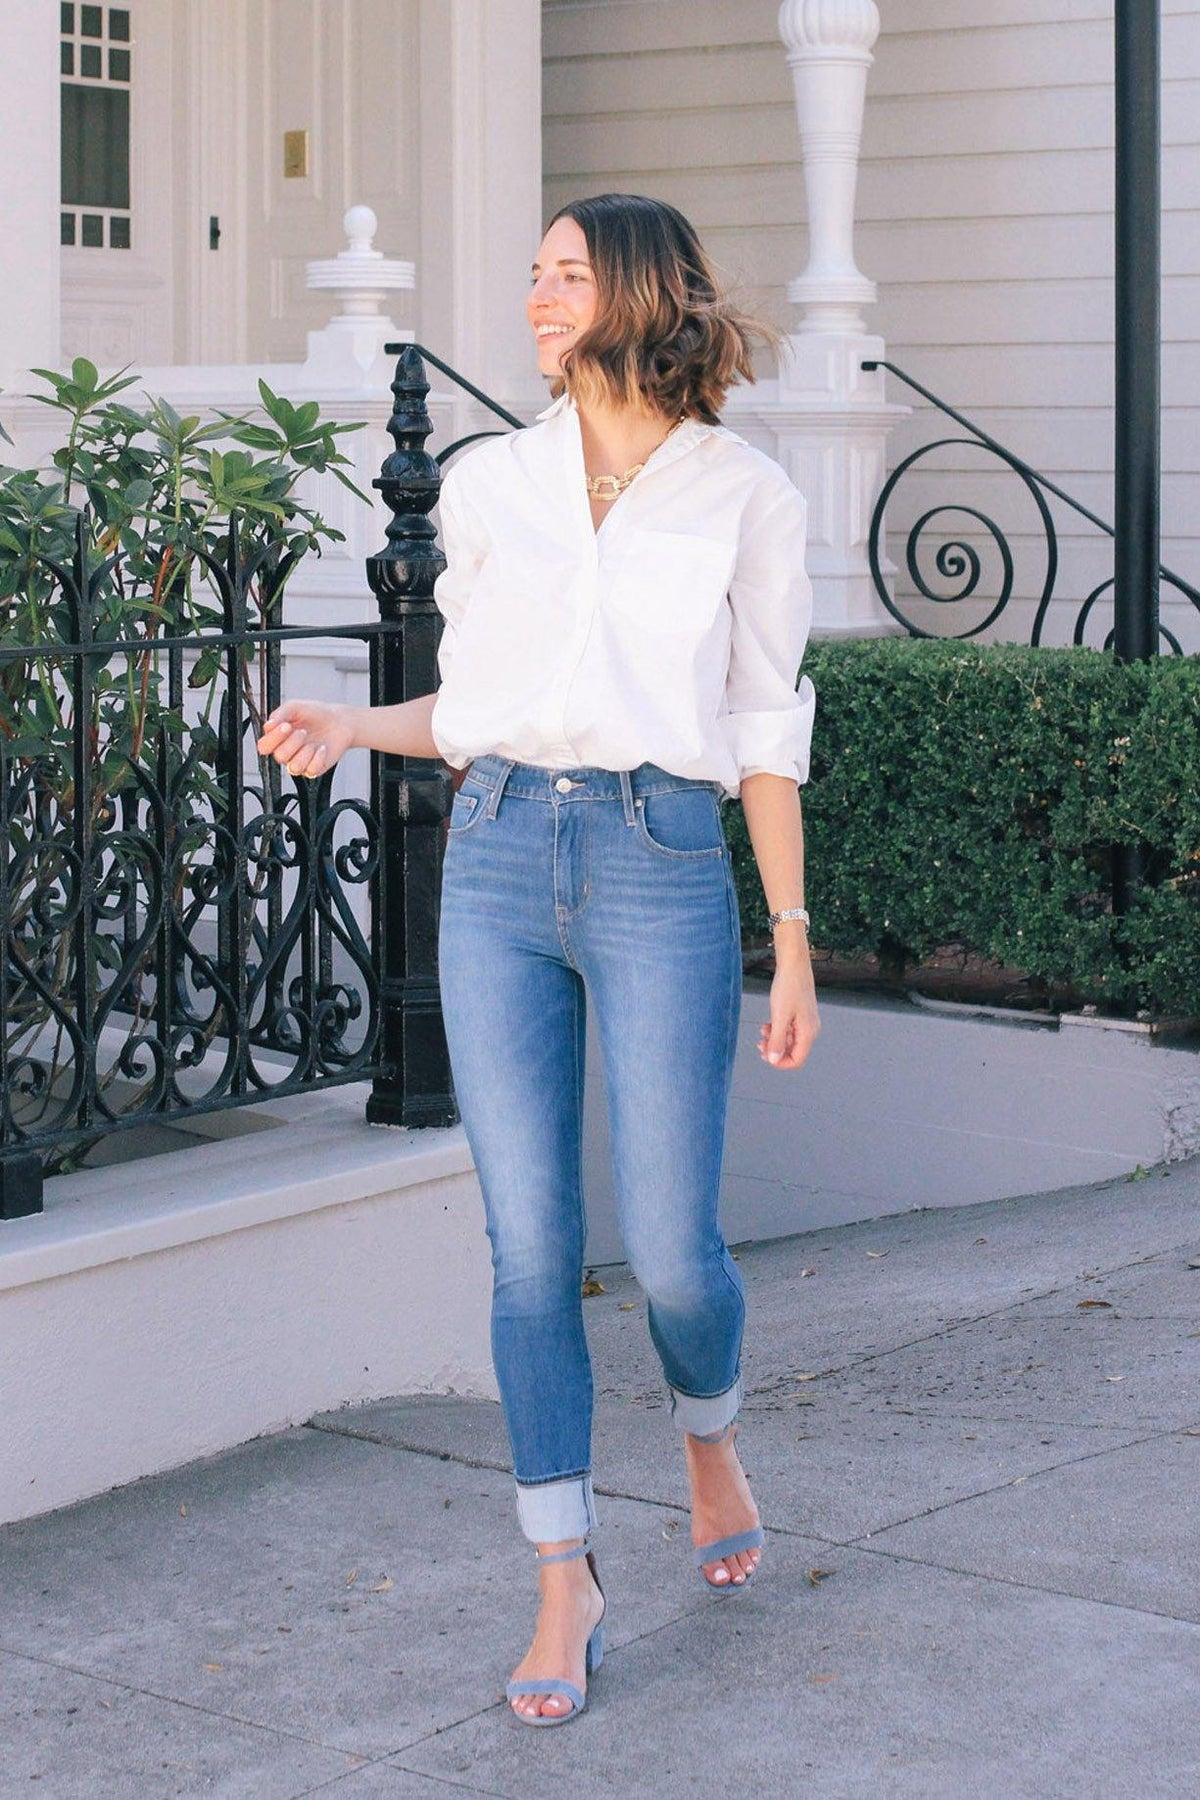 Levi's 721 High Rise Skinny Jeans from Sweet & Spark